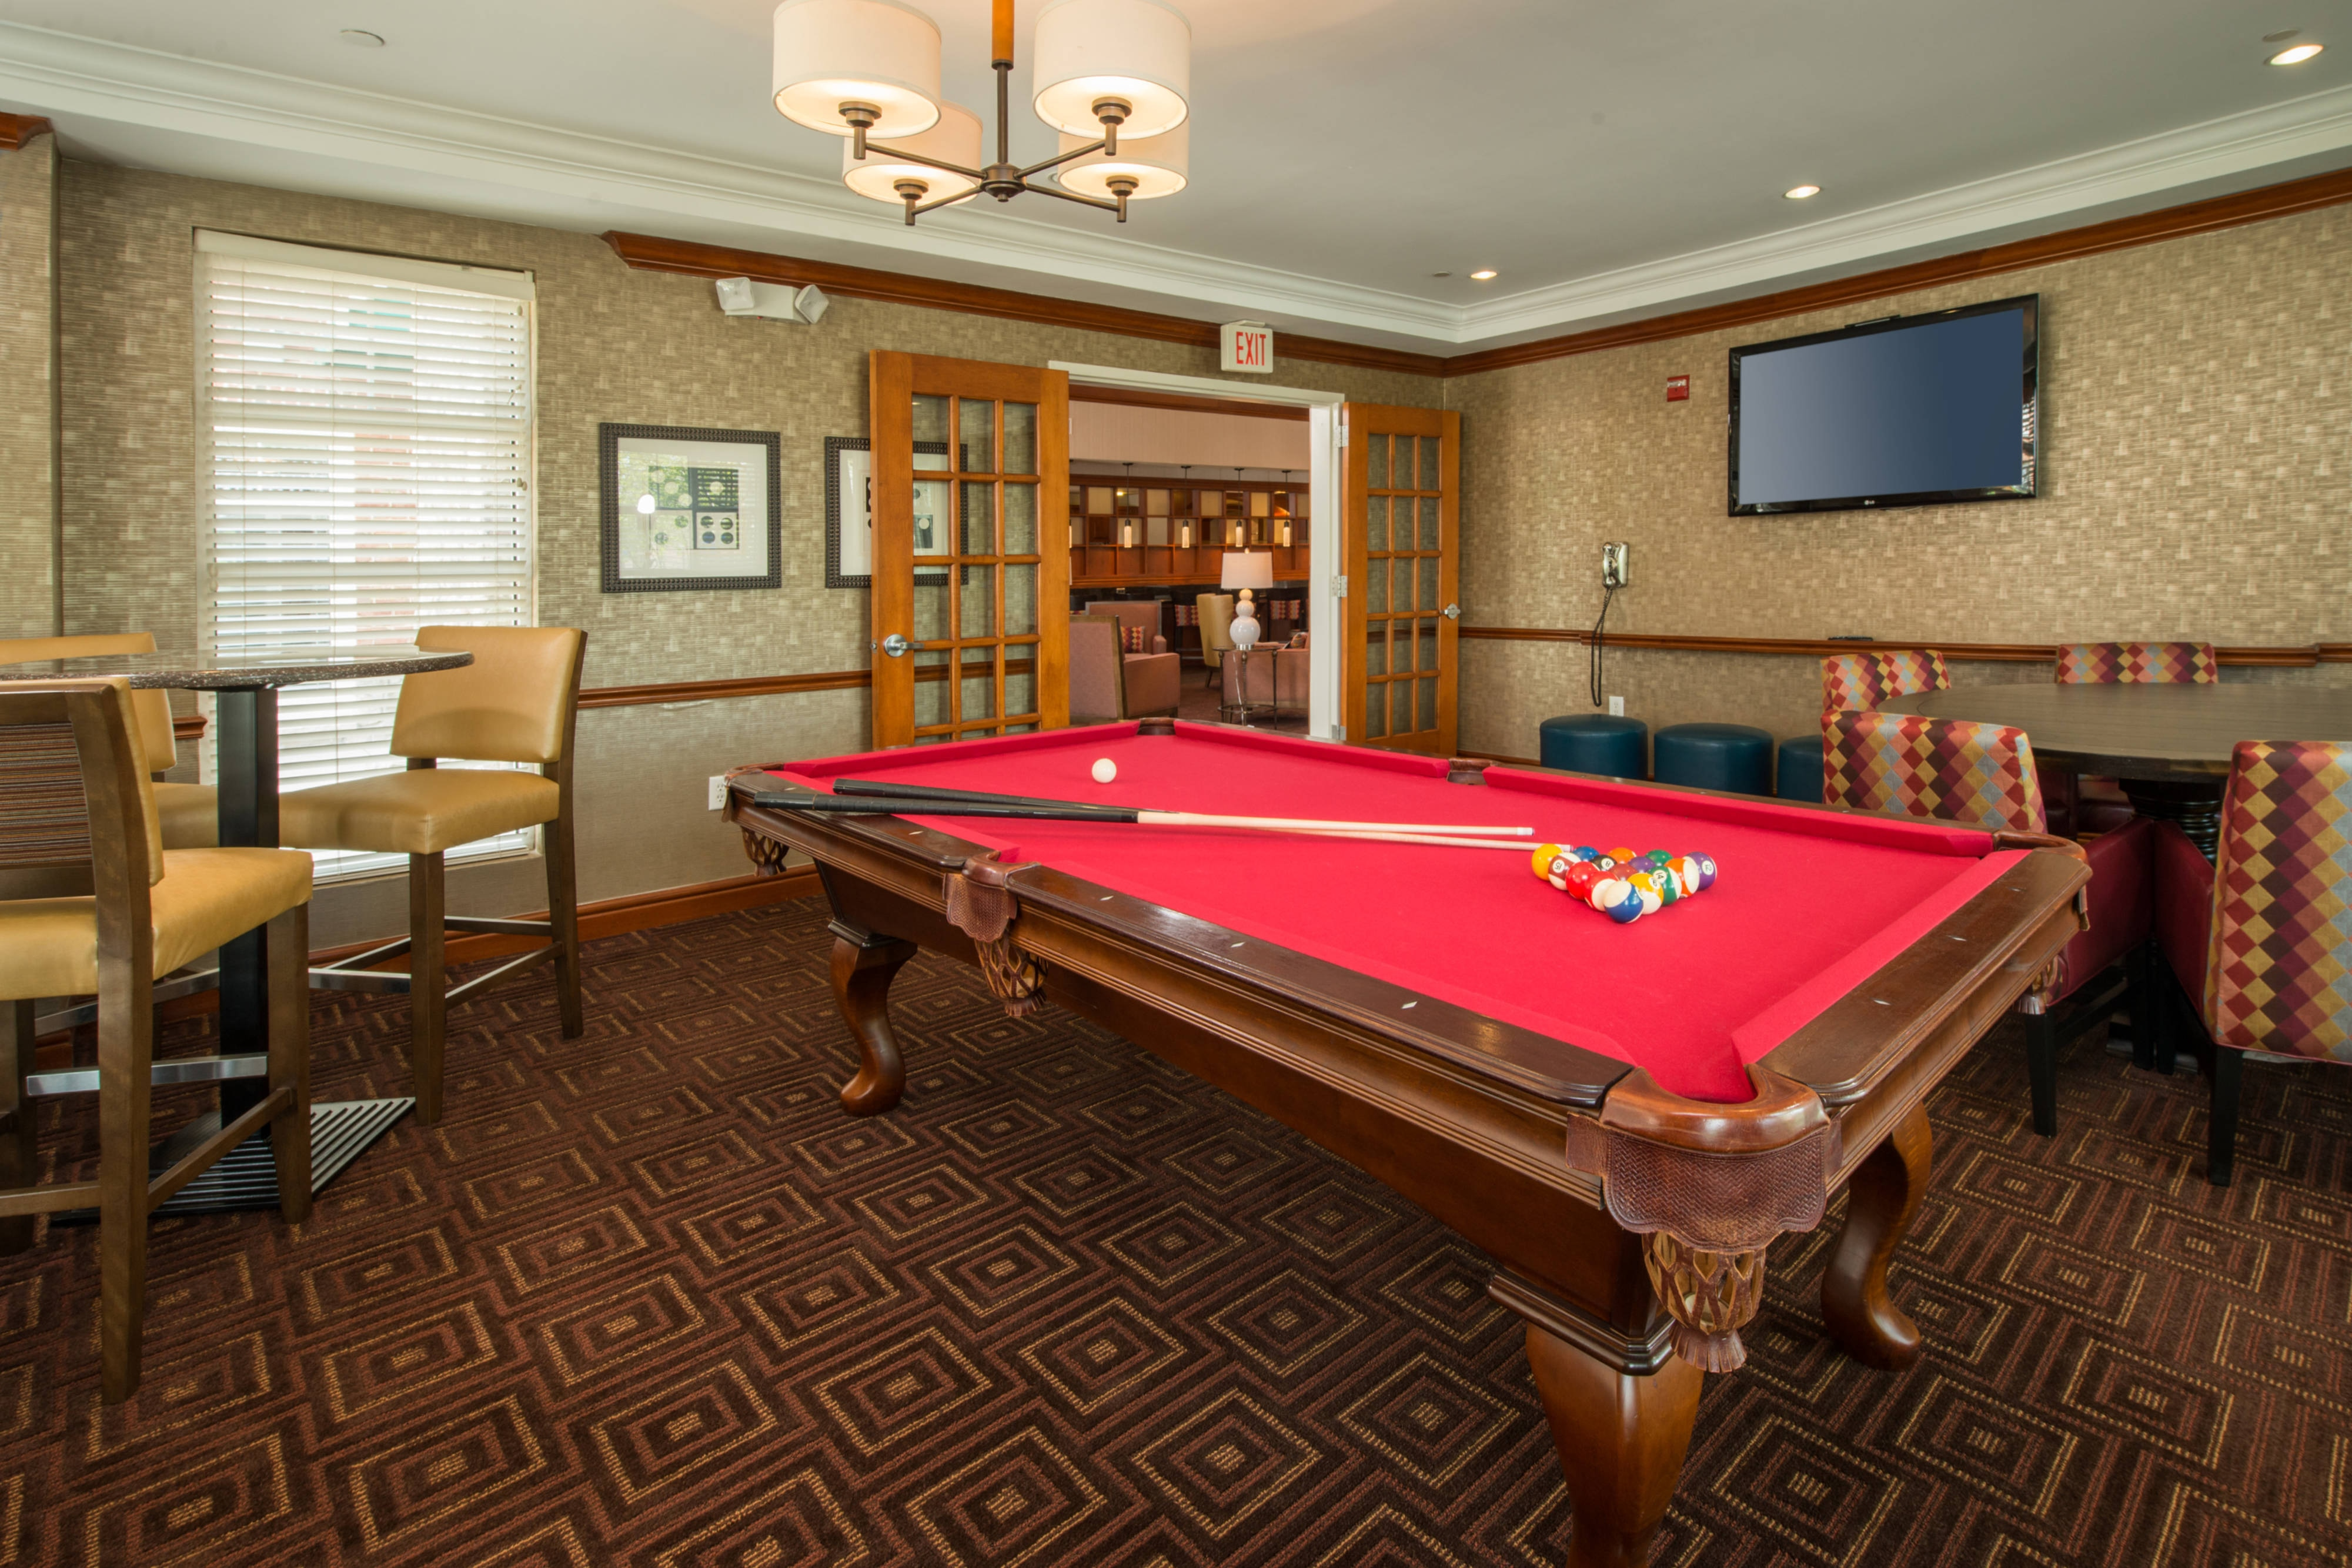 Dulles Airport Hotel Billiards